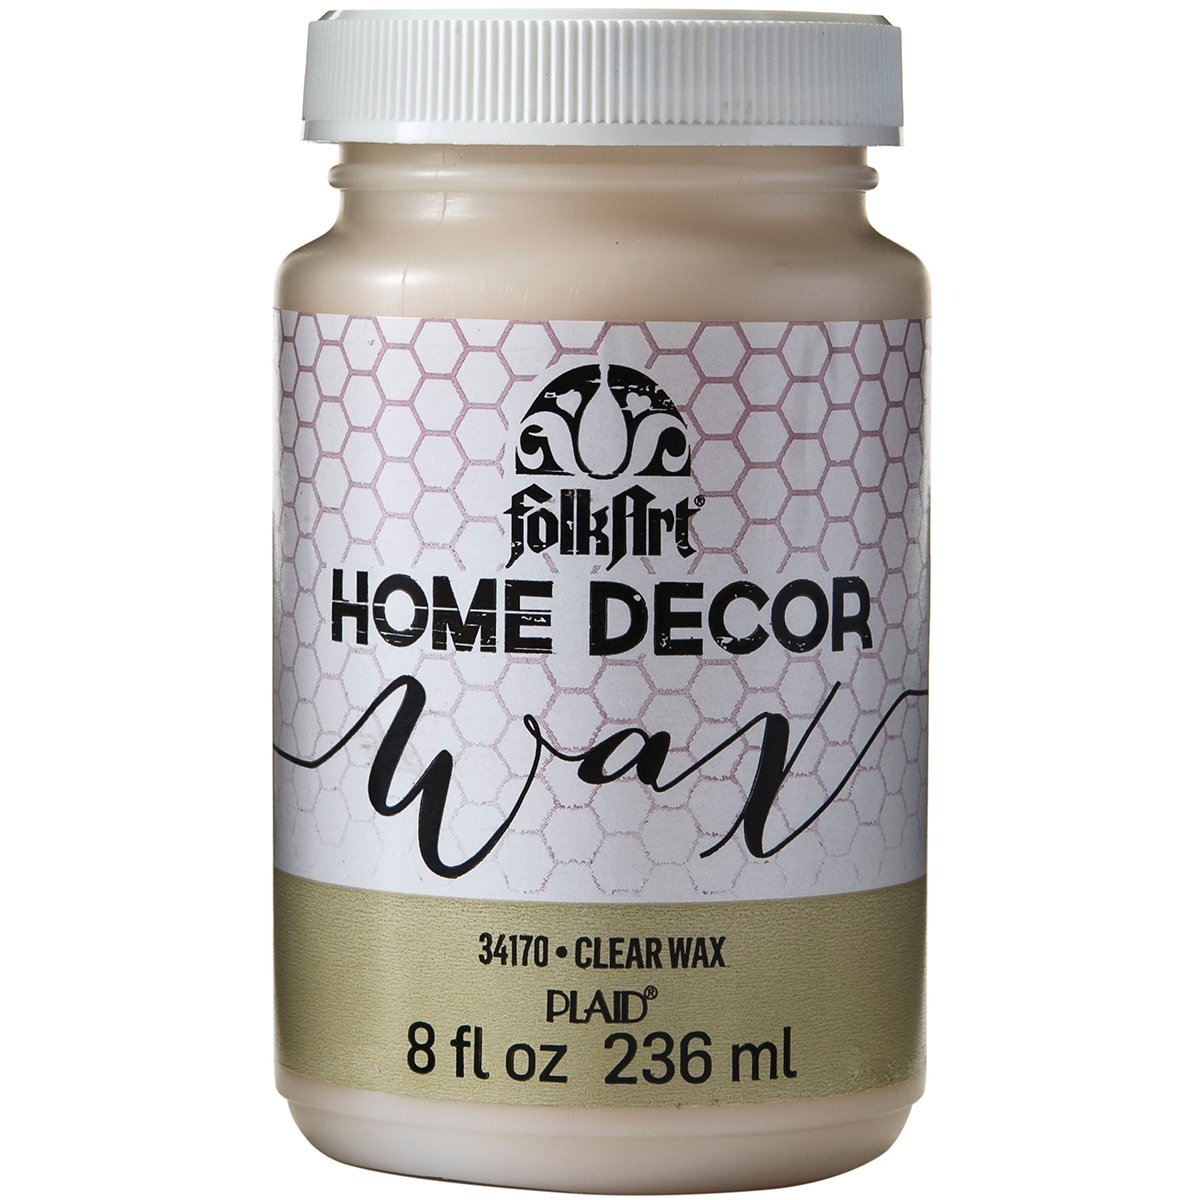 FolkArt 34170 Home Decor Chalk Furniture & Craft Paint in Assorted Colors, 8 ounce, Clear Wax by FolkArt